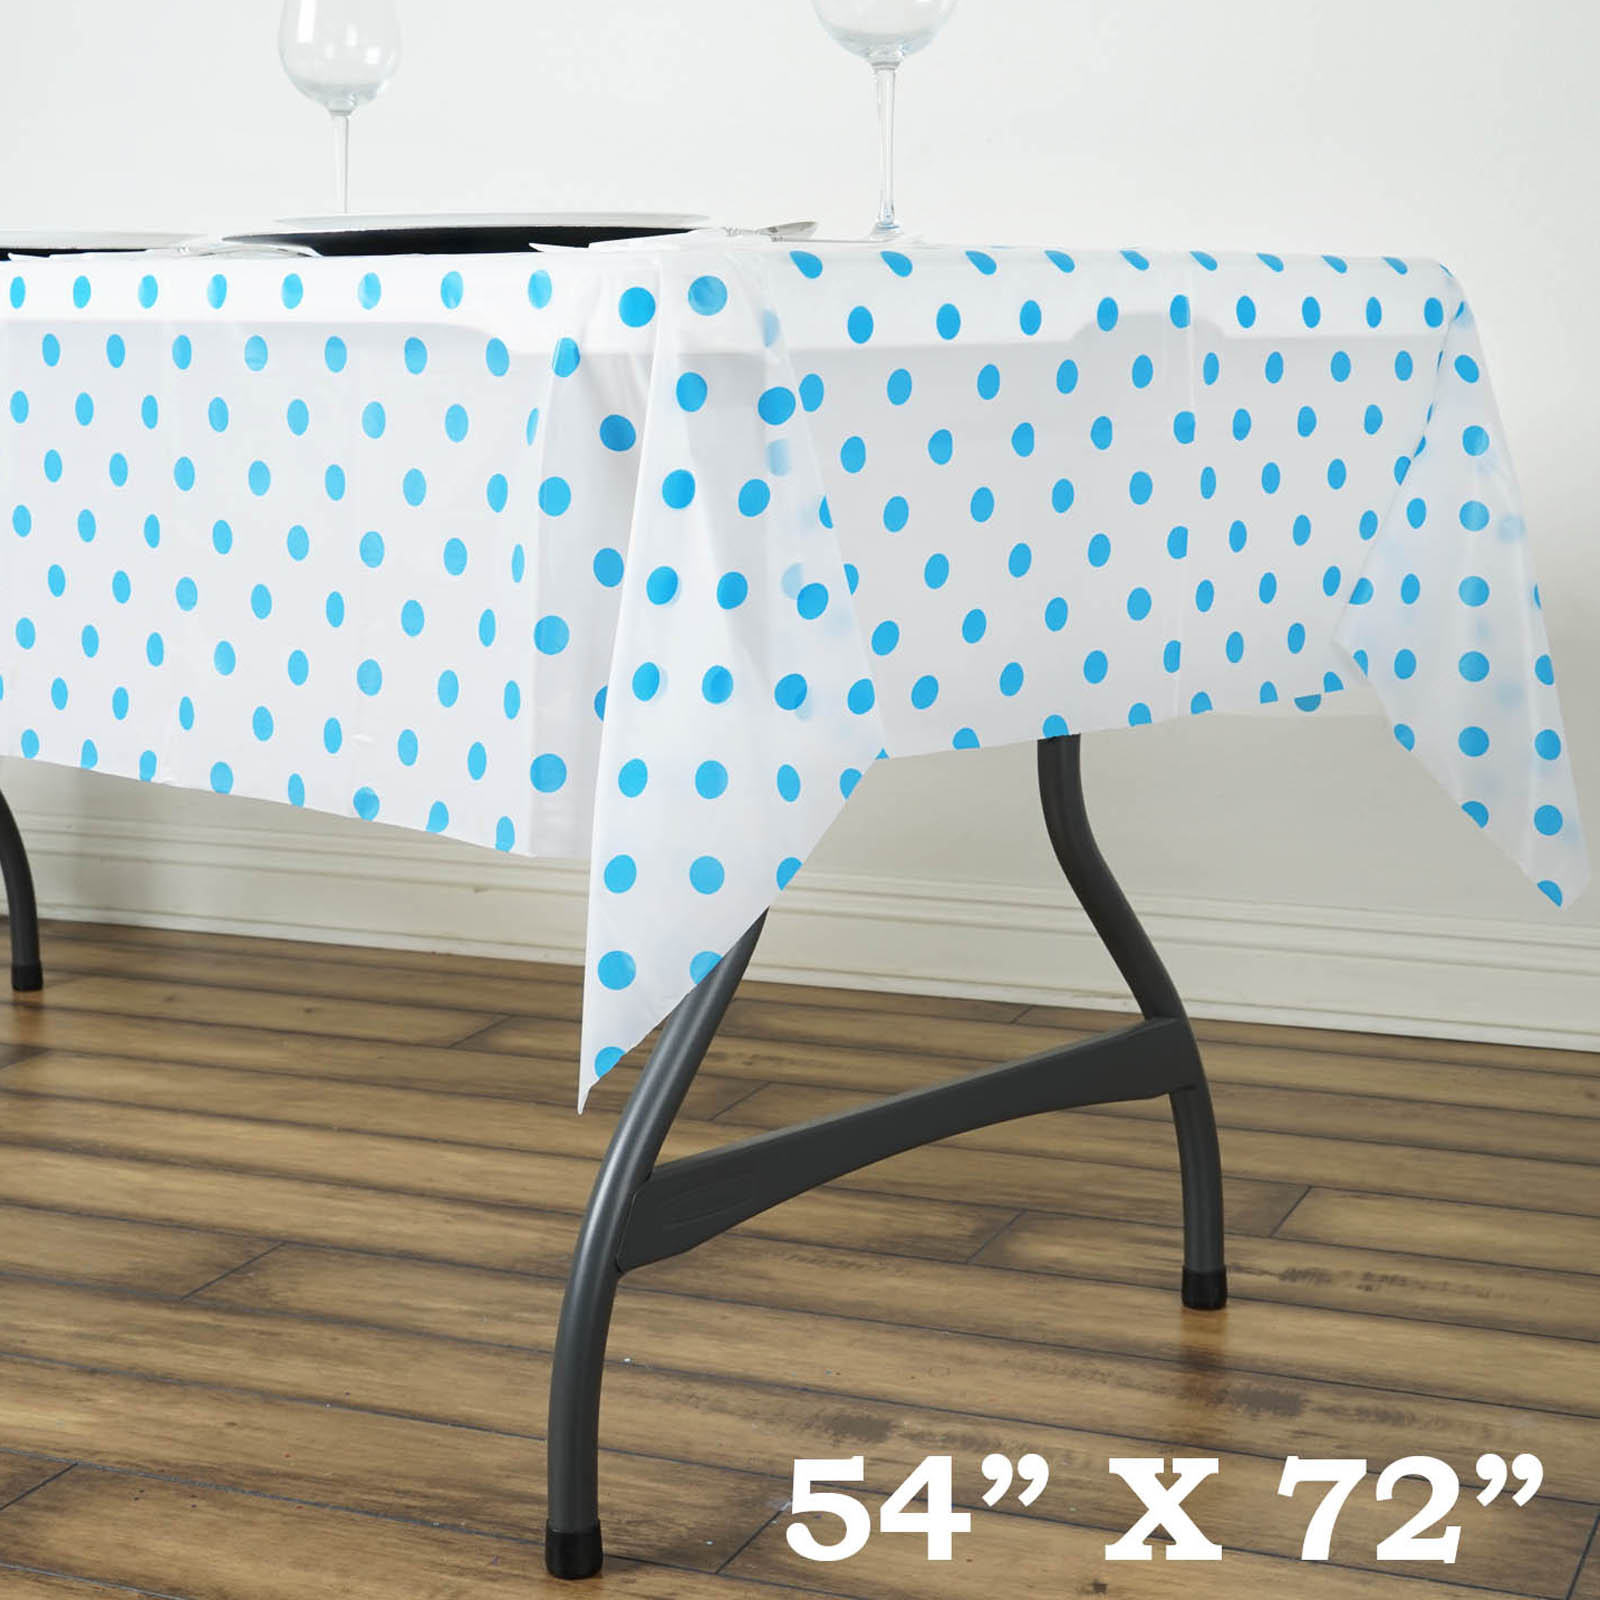 Efavormart 10 Pcs Perky Polka Dots Rectangle  Disposable Plastic Table Cover for Kitchen Dining Catering Wedding Birthday Party